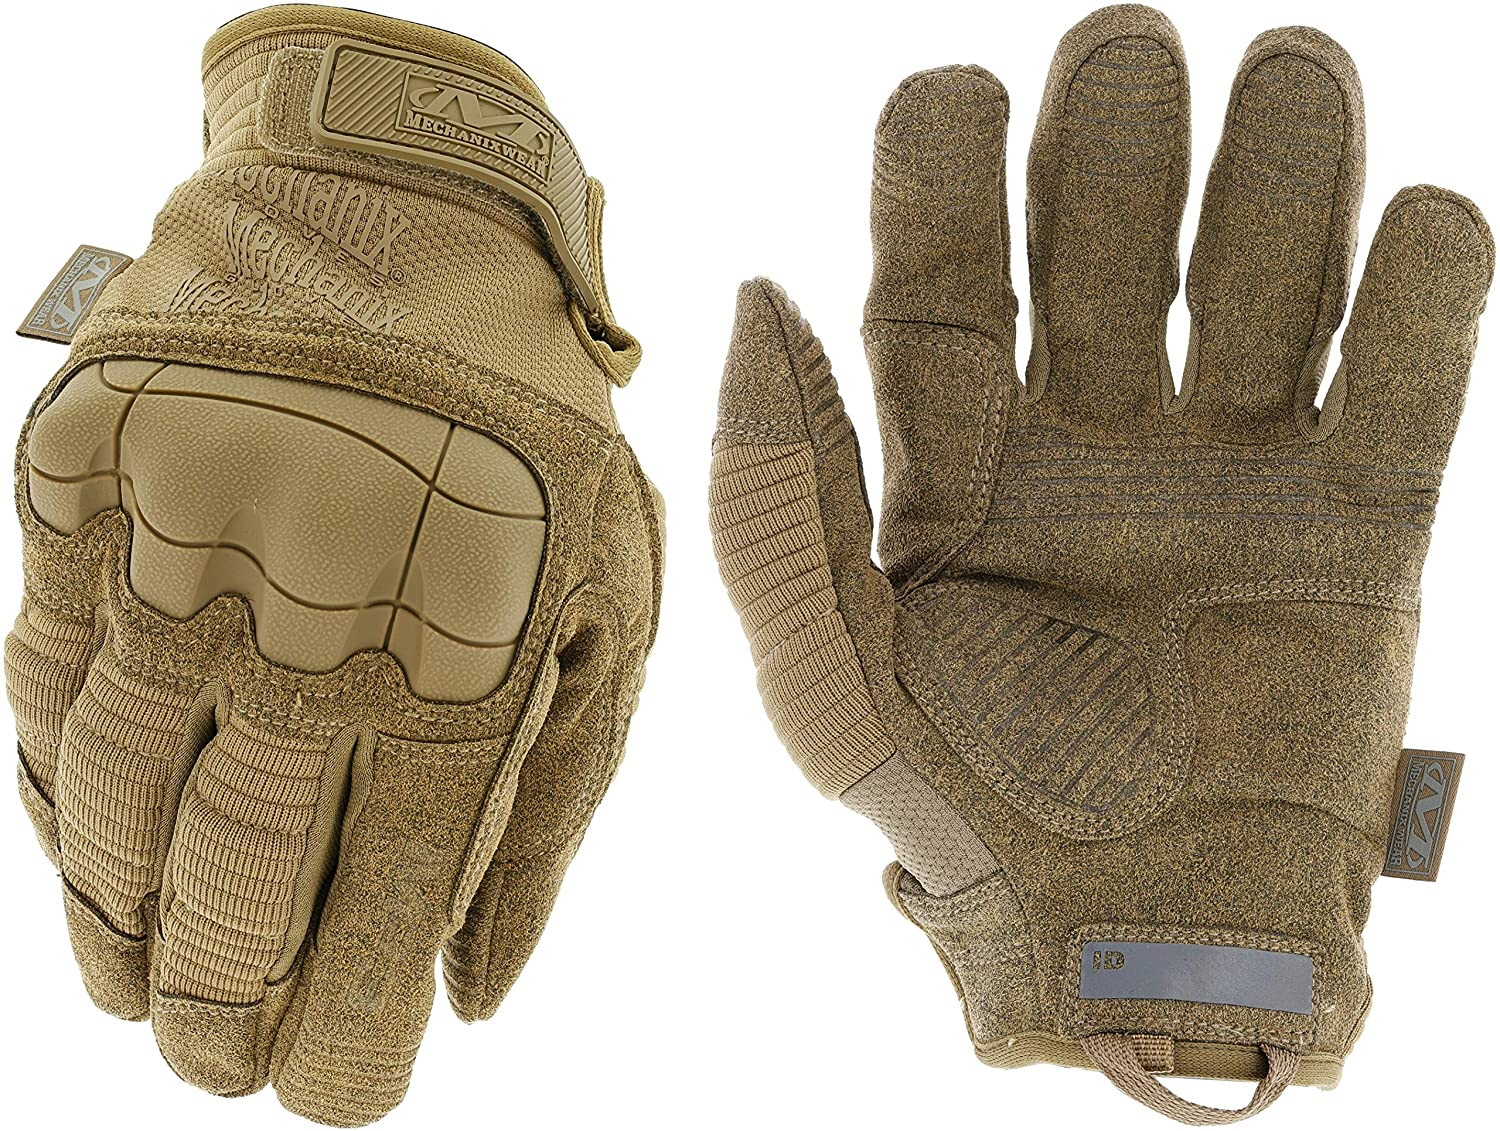 best tactical gloves with knuckle protection